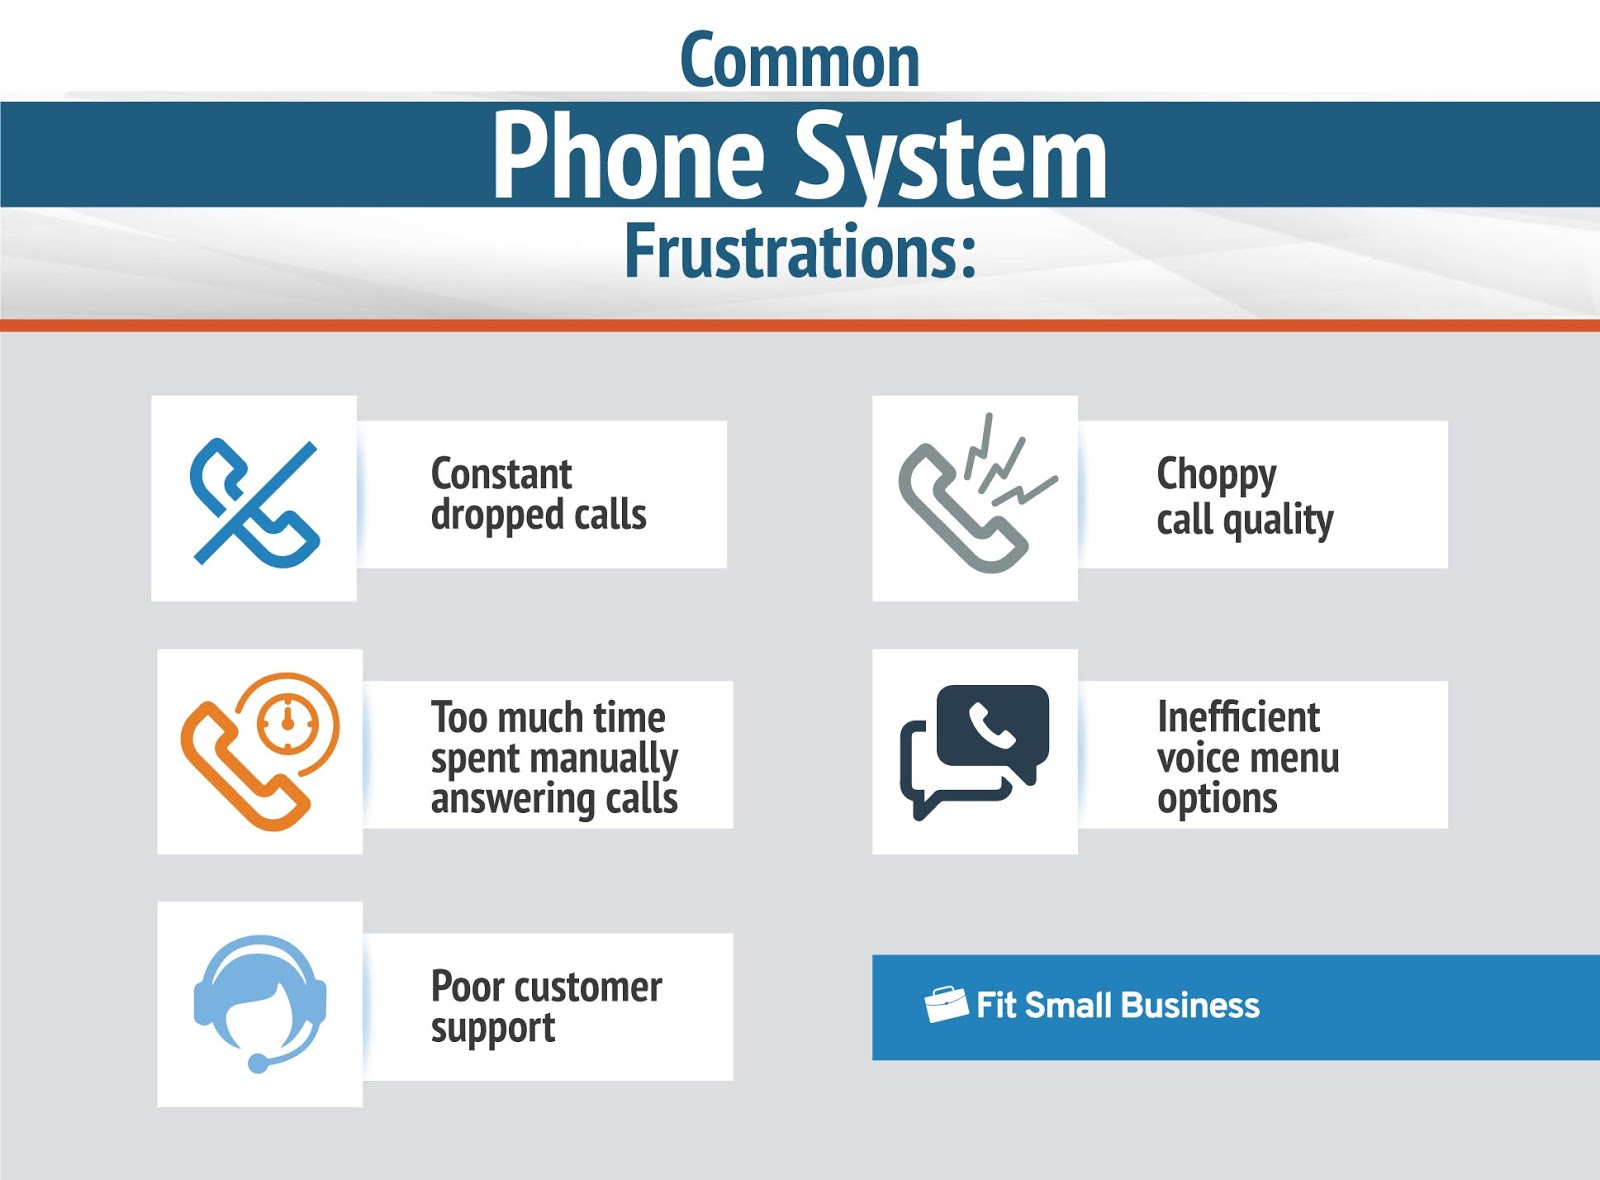 Common Phone System Frustrations